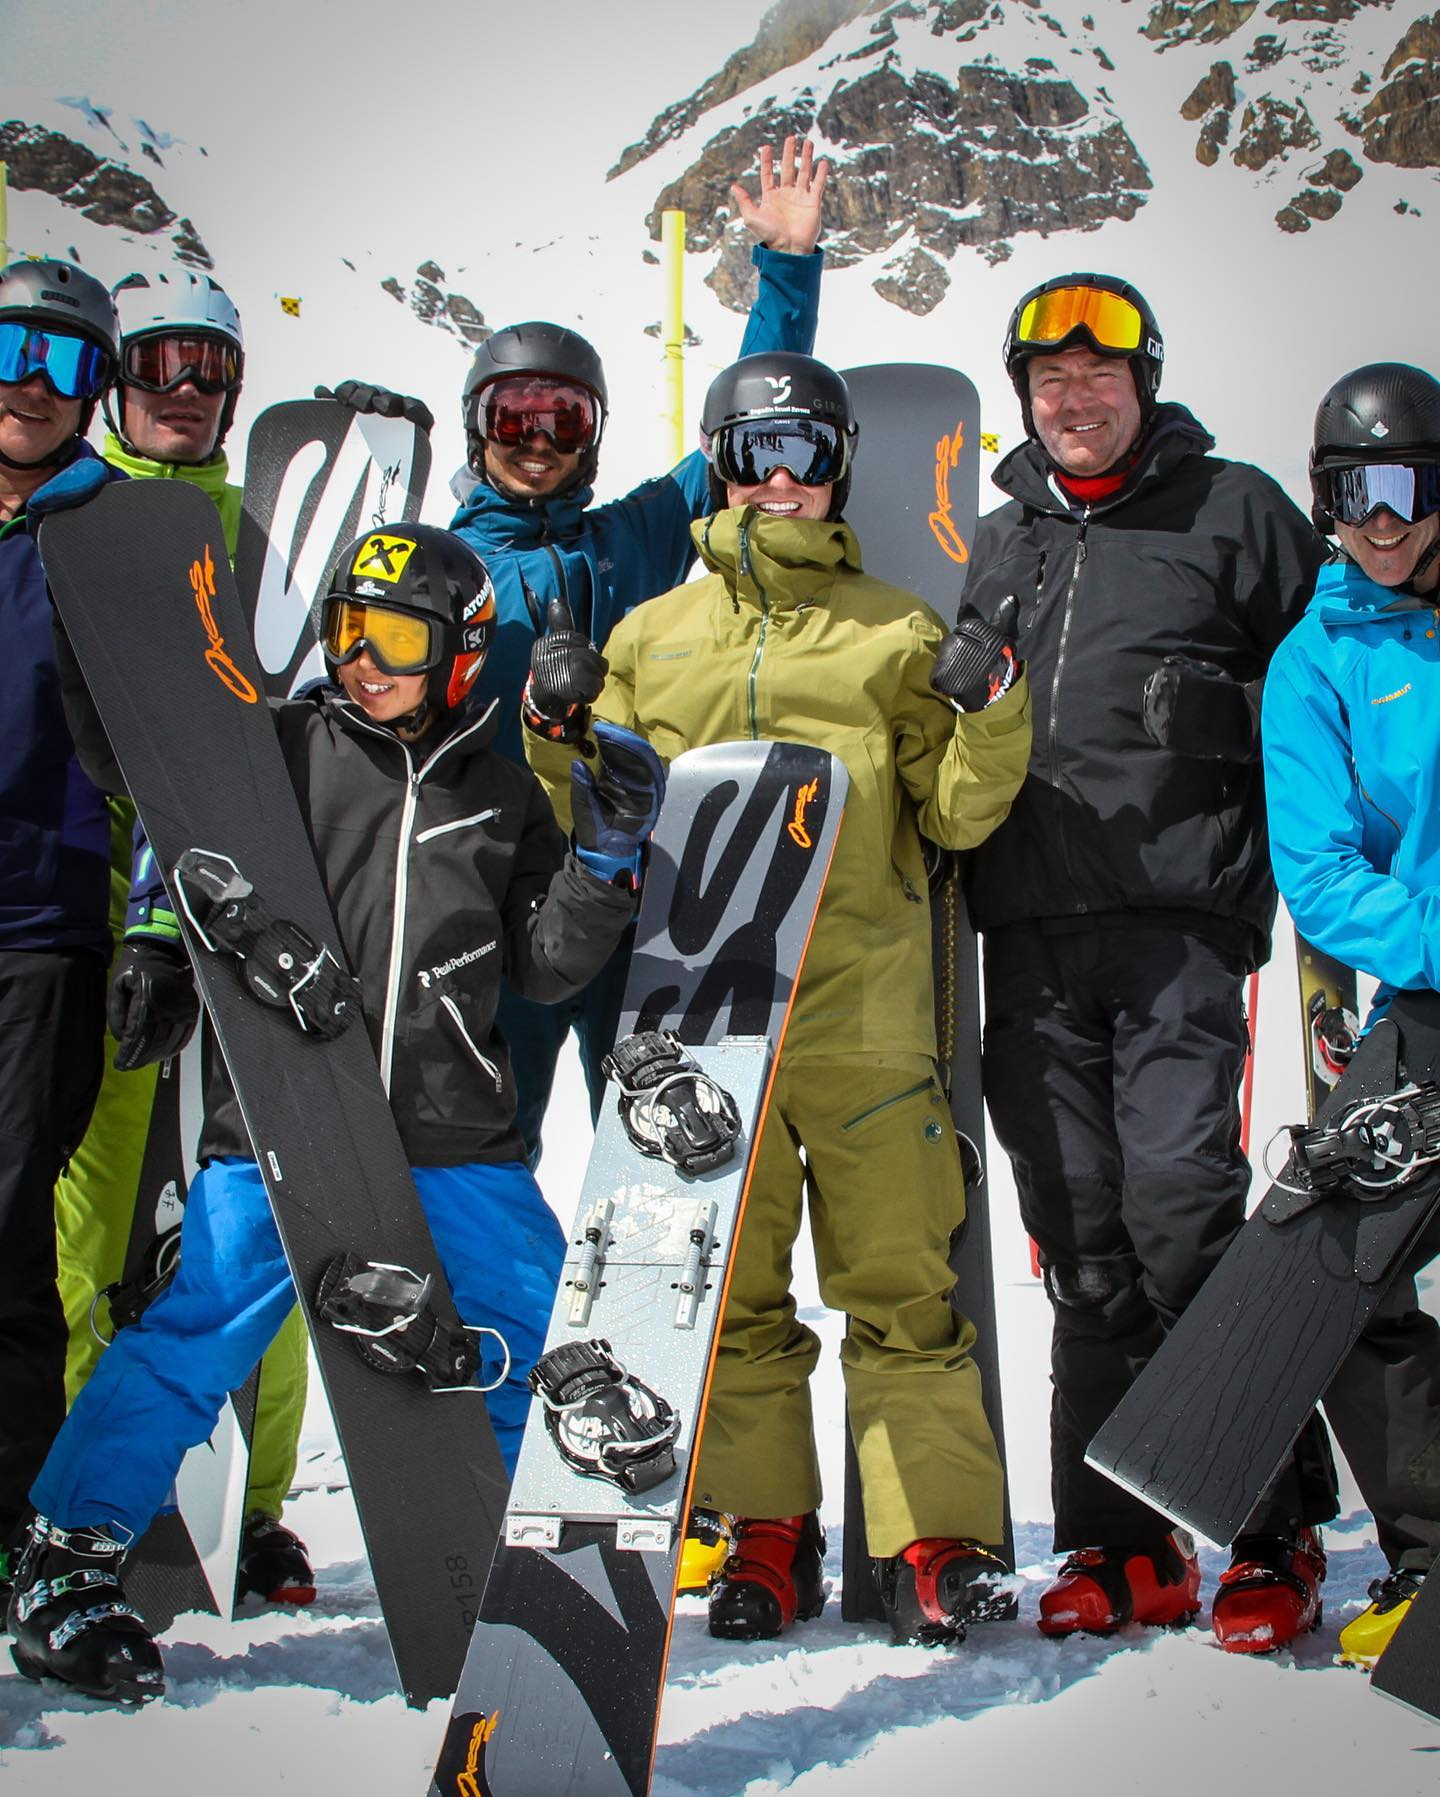 Good news: There will be a @snowboardcarvingcamp this year! April 8 - 11, 2021 in Scuol, Switzerland All details and booking on www.carvingcamp.ch . . . @engadinscuolzernez @oxesssnowsport @allflexplate